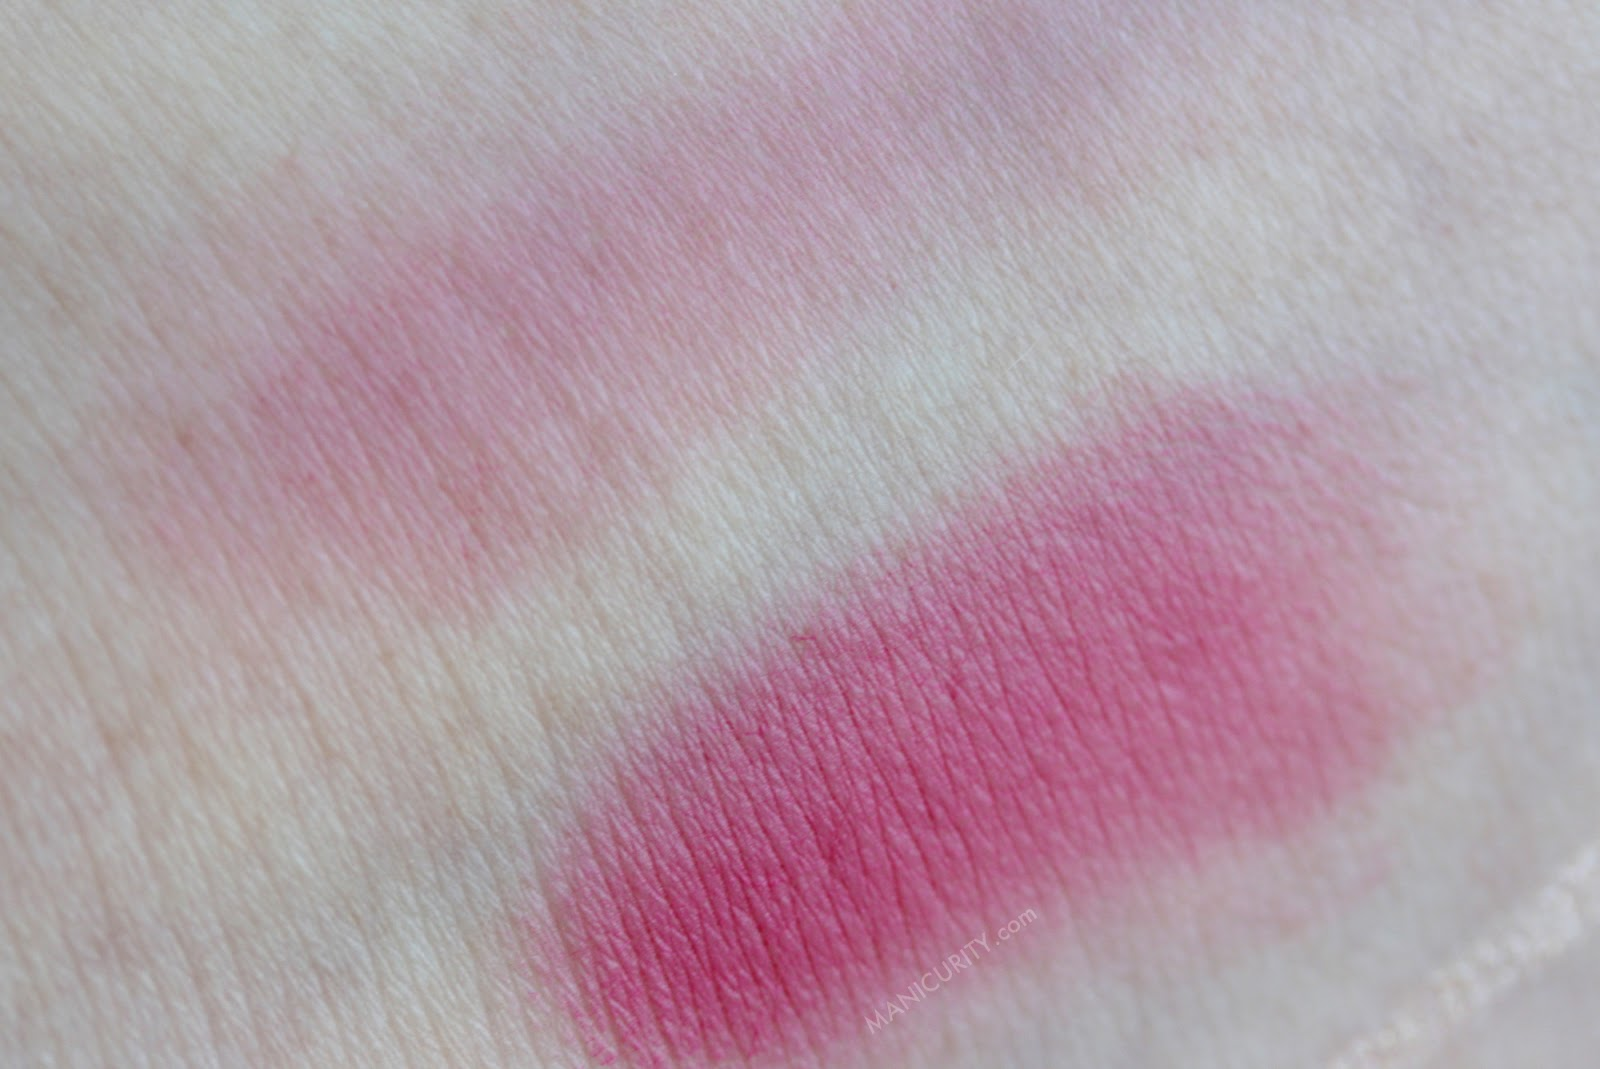 Ipsy Glam Bag January 2014 - First Impressions - Mica Beauty Cosmetics Tinted Lip Balm #06 in Fiesta swatches | Manicurity.com